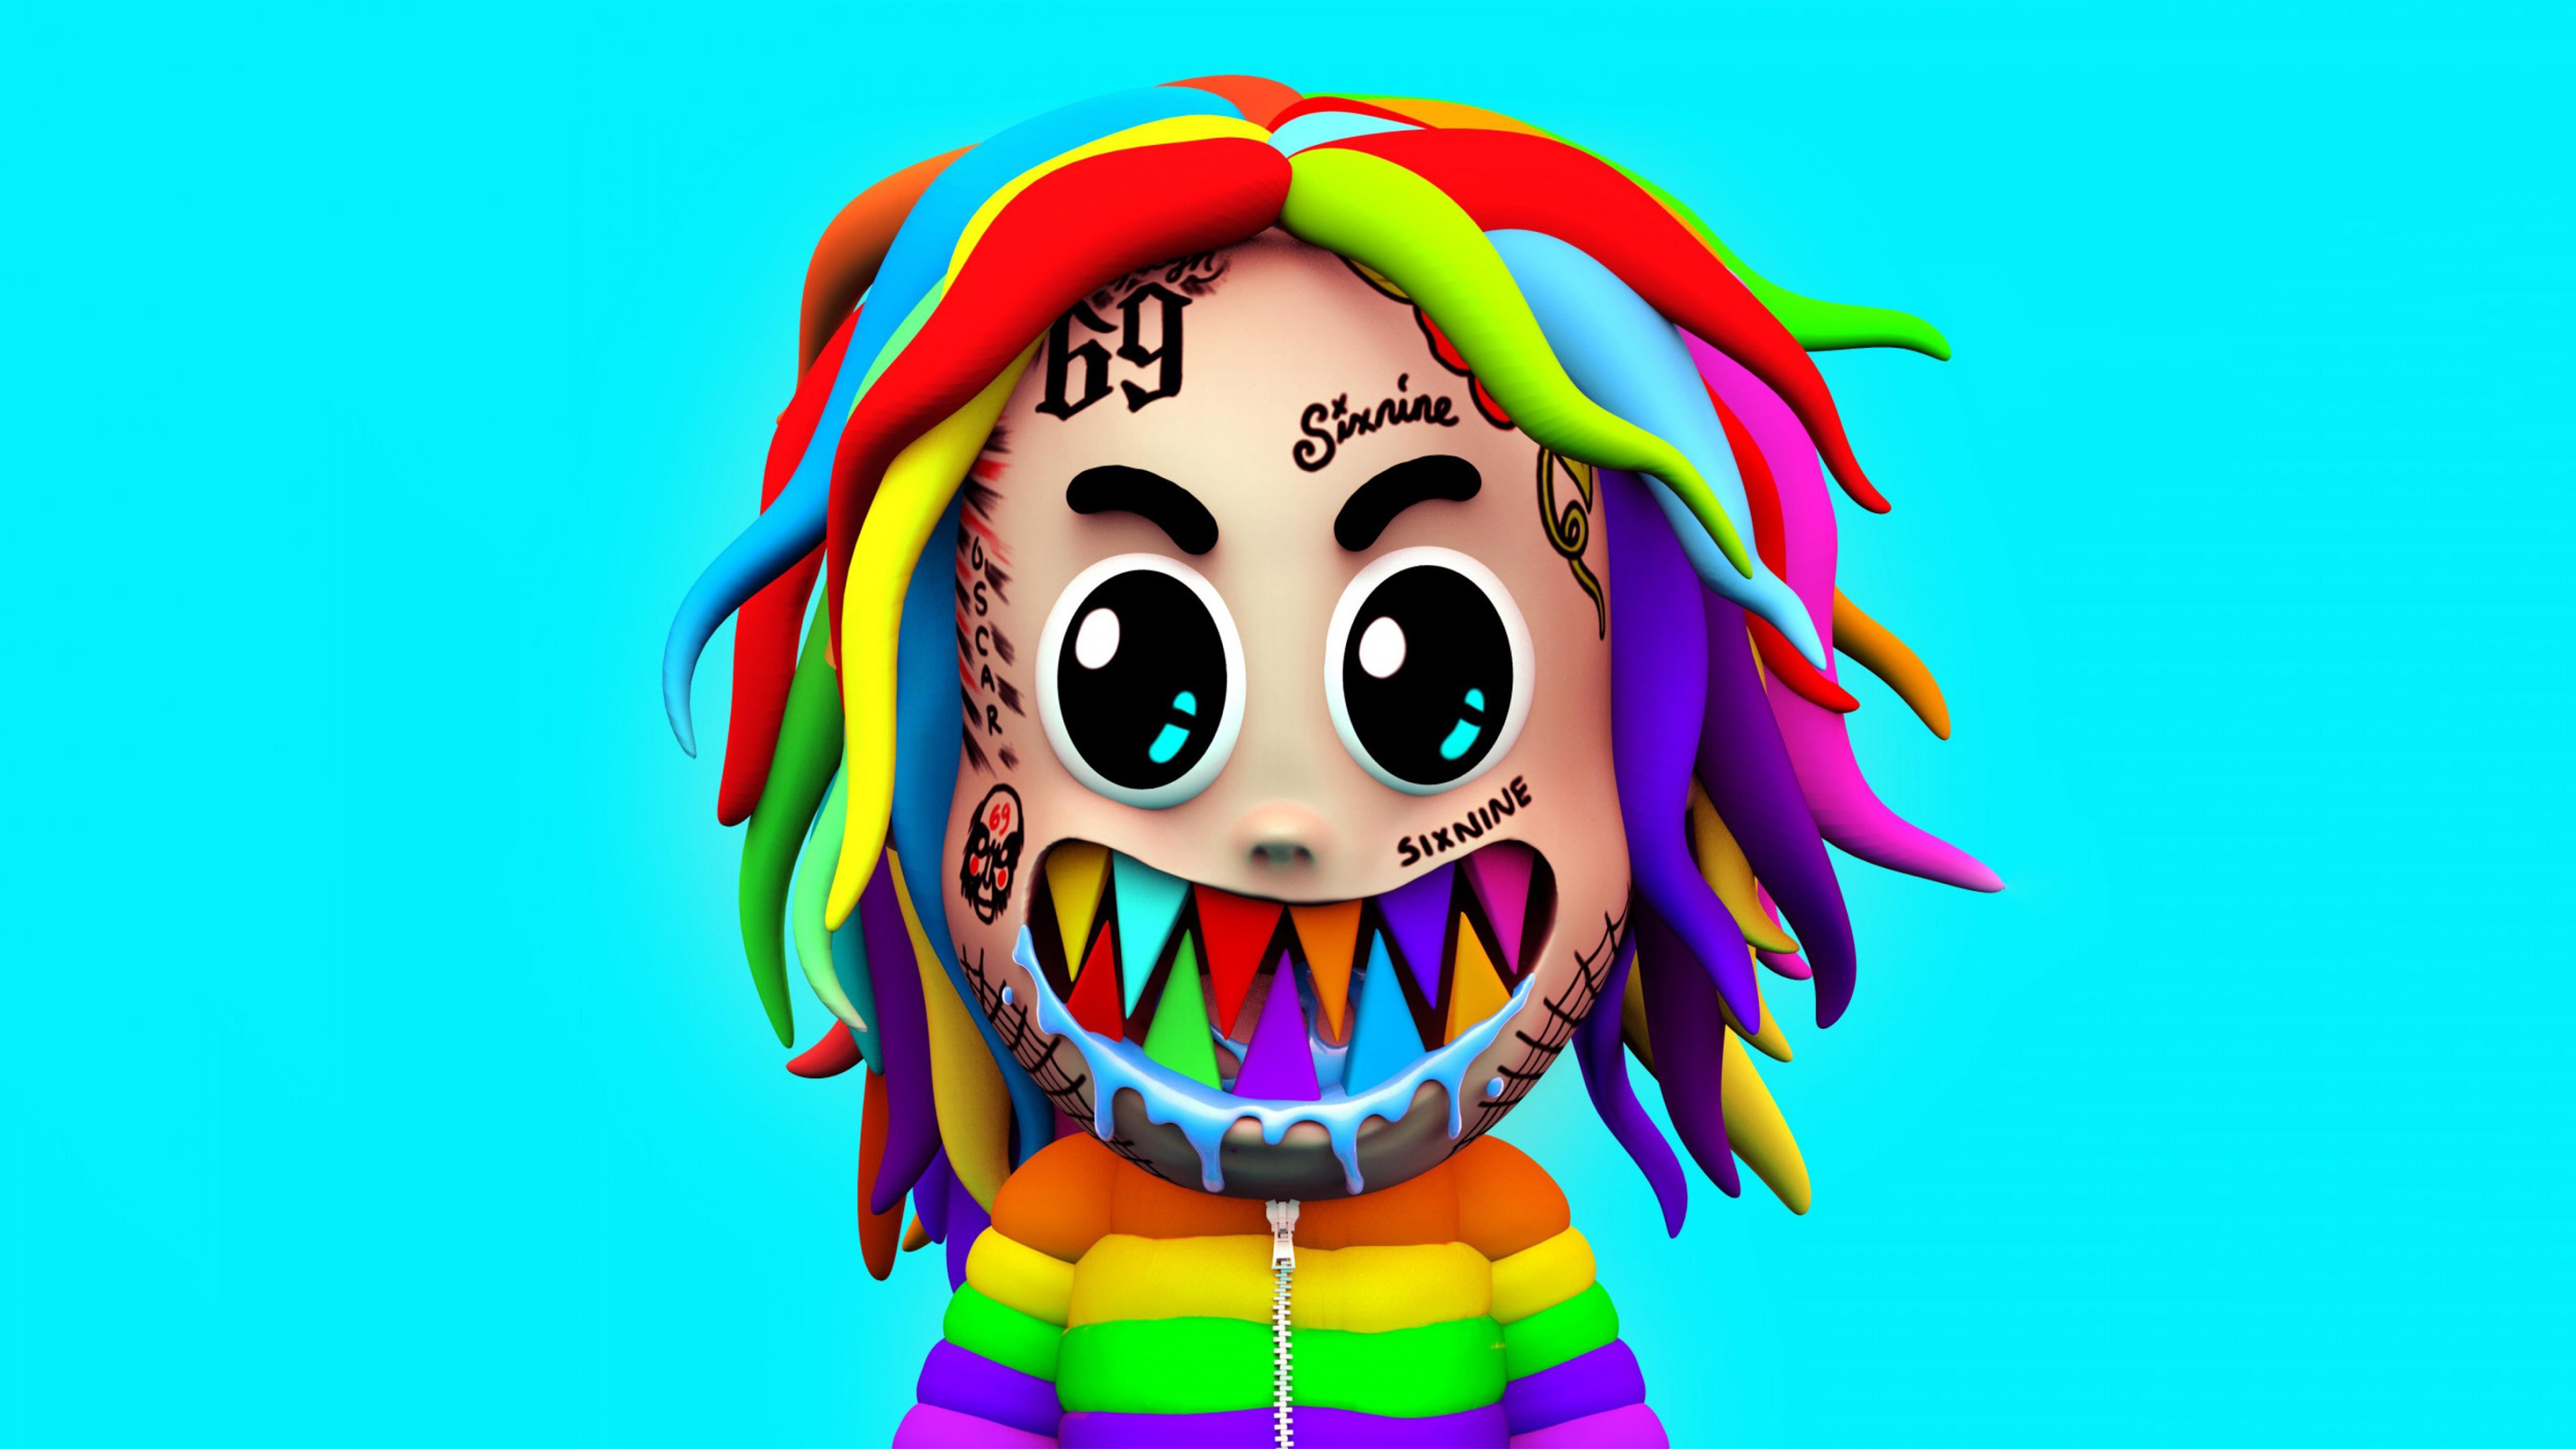 6ix9ine Gooba Hd Music 4k Wallpapers Images Backgrounds Photos And Pictures